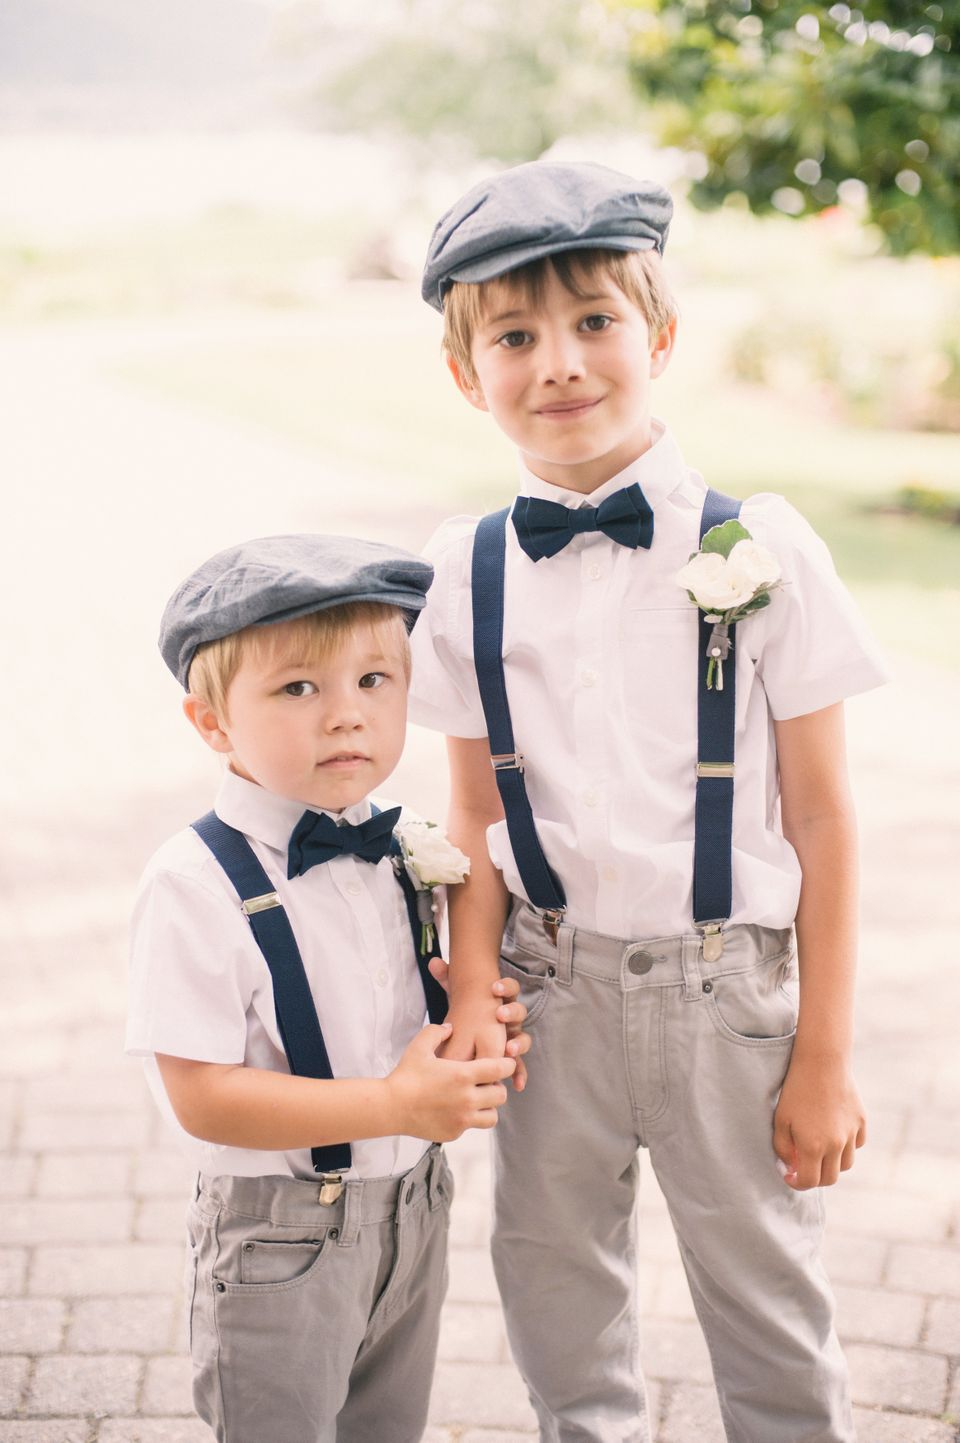 7 Adorably Stylish Ring Bearer Outfits That Are Tough Acts To